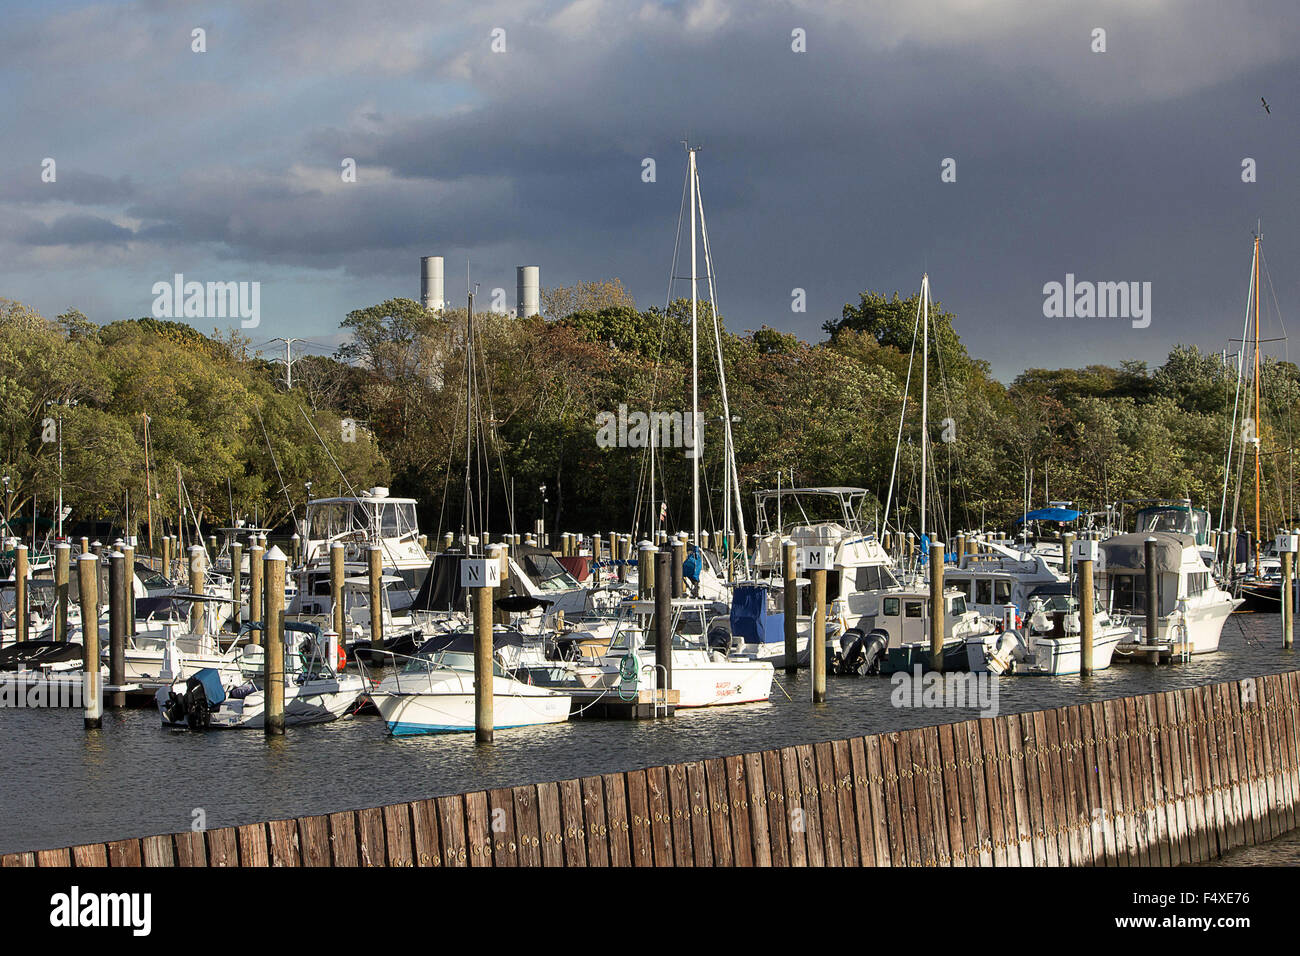 Waterfront scenic- Sailboats and motorboats await the next summer season docked at Roslyn Harbor NY - Stock Image